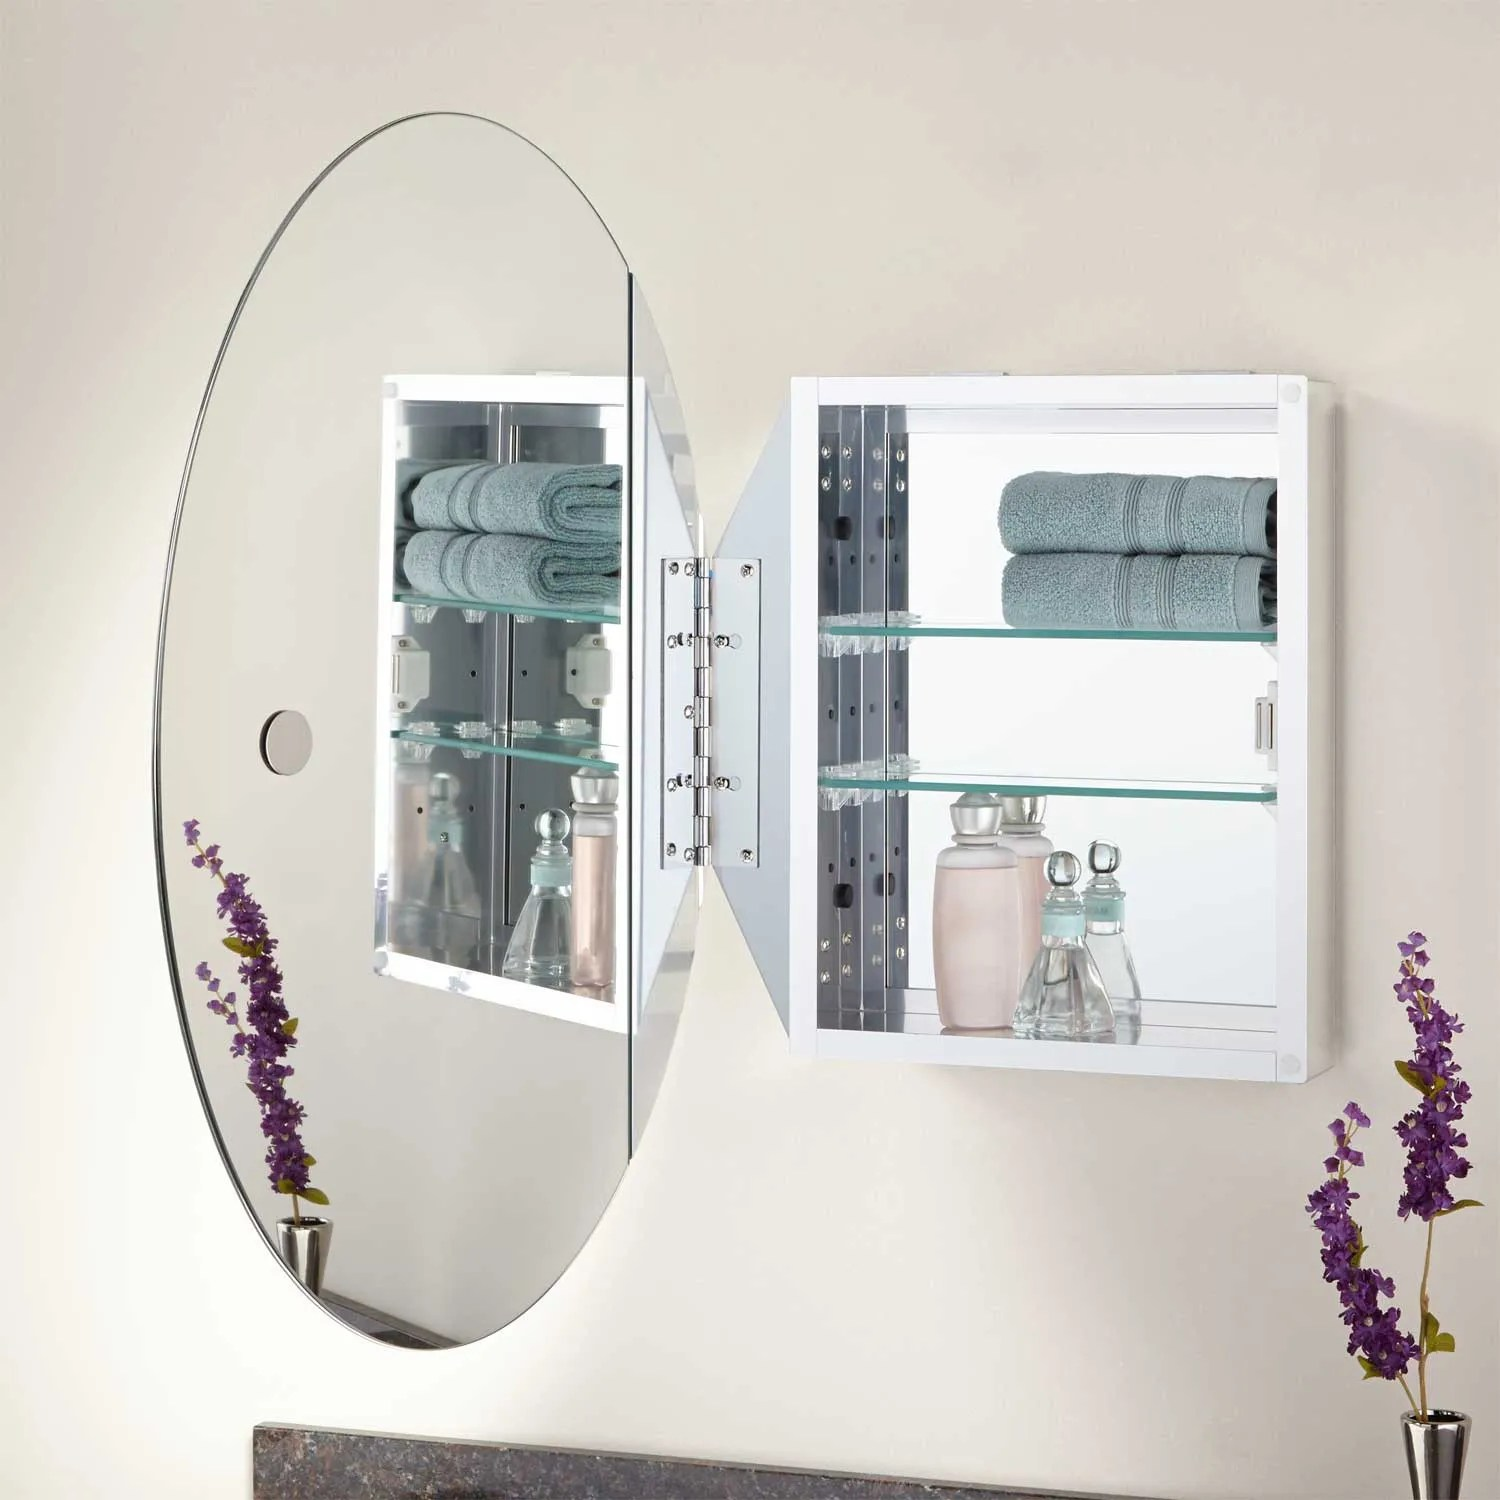 Recessed Shaving Cabinets Taussig Surface Mount Oval Medicine Cabinet Bathroom